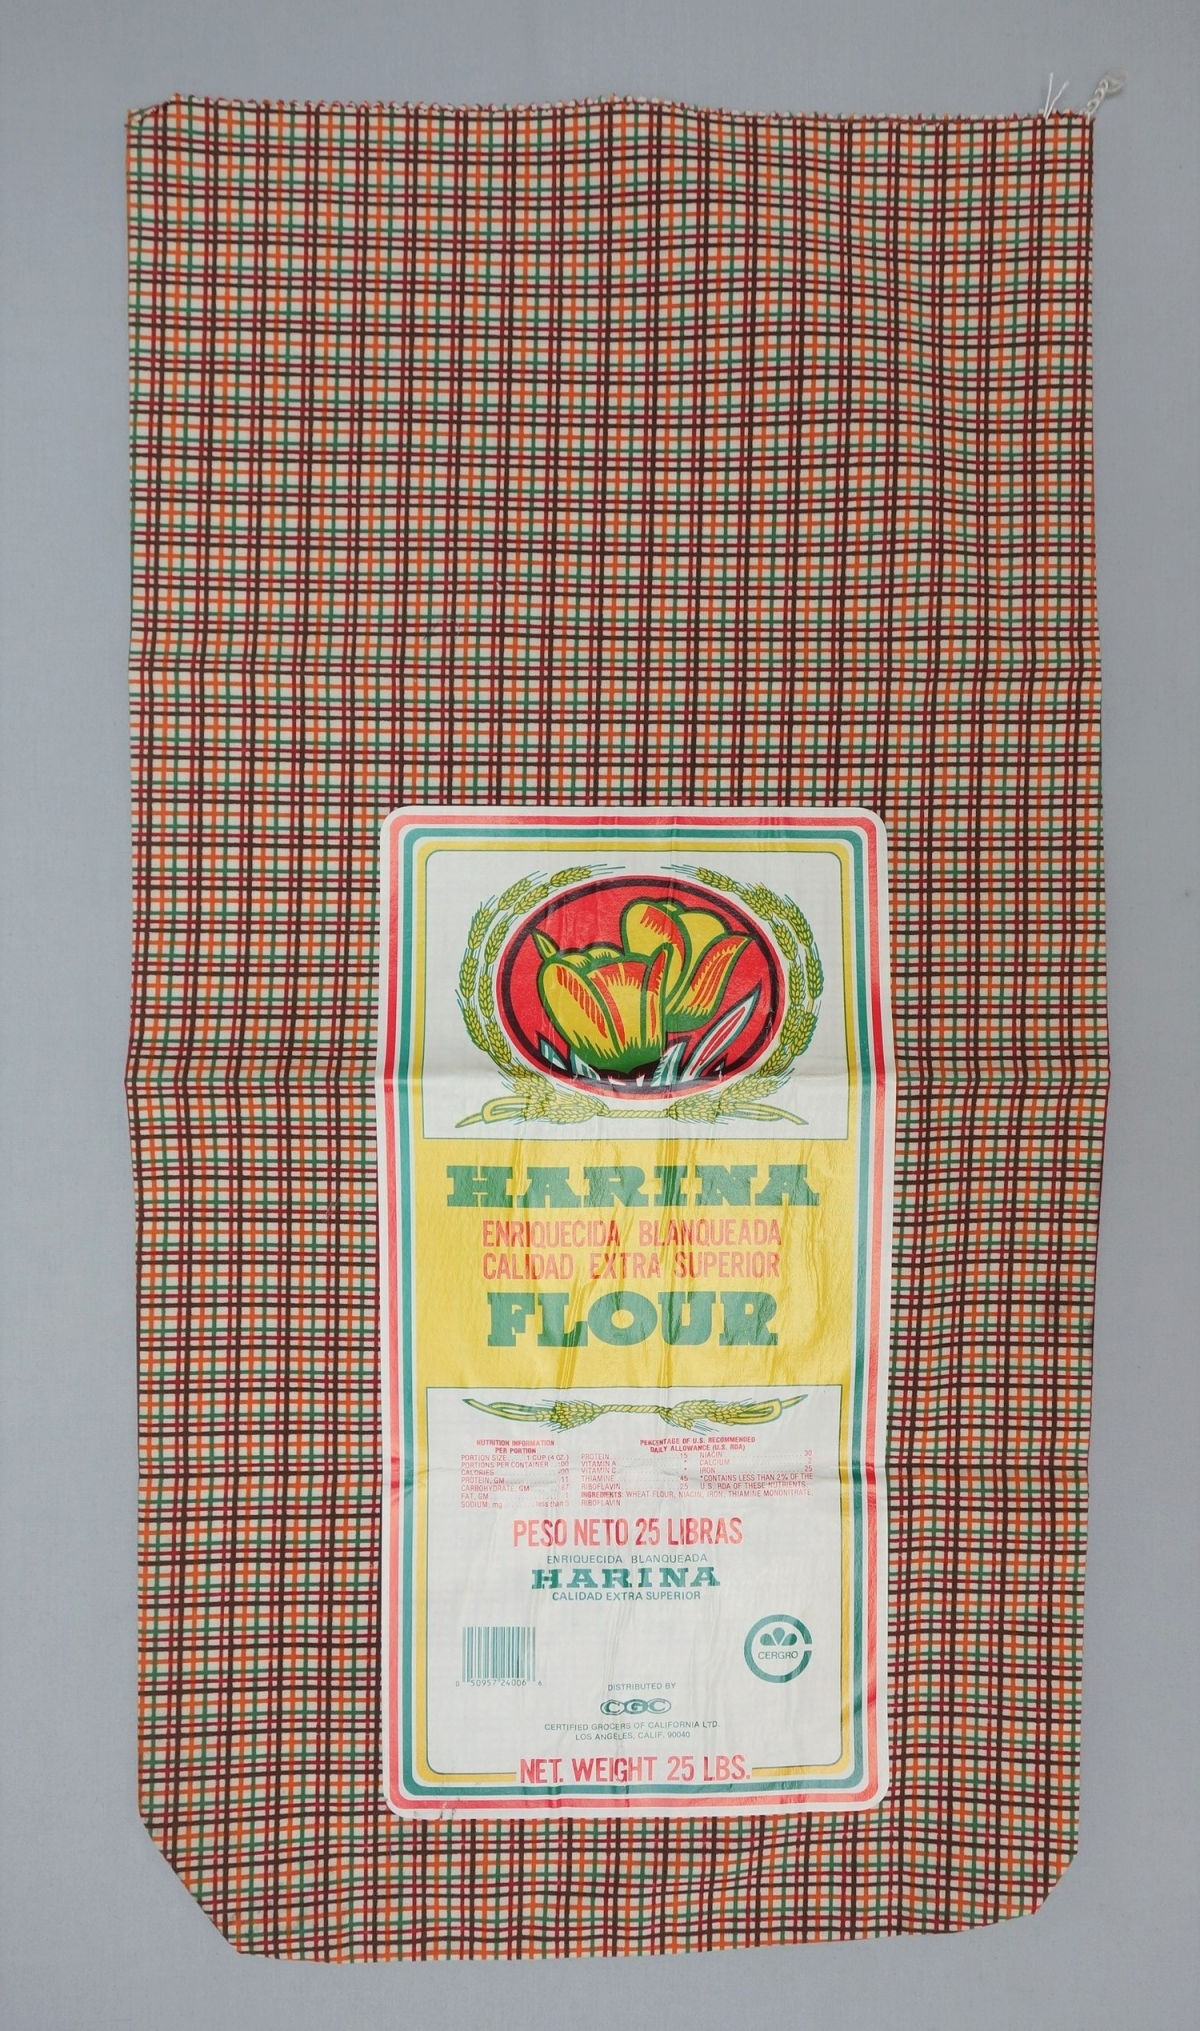 Large sack made from cotton with a printed checked design in brown, dark red, green and orange. With barcode. USA, 1960's.